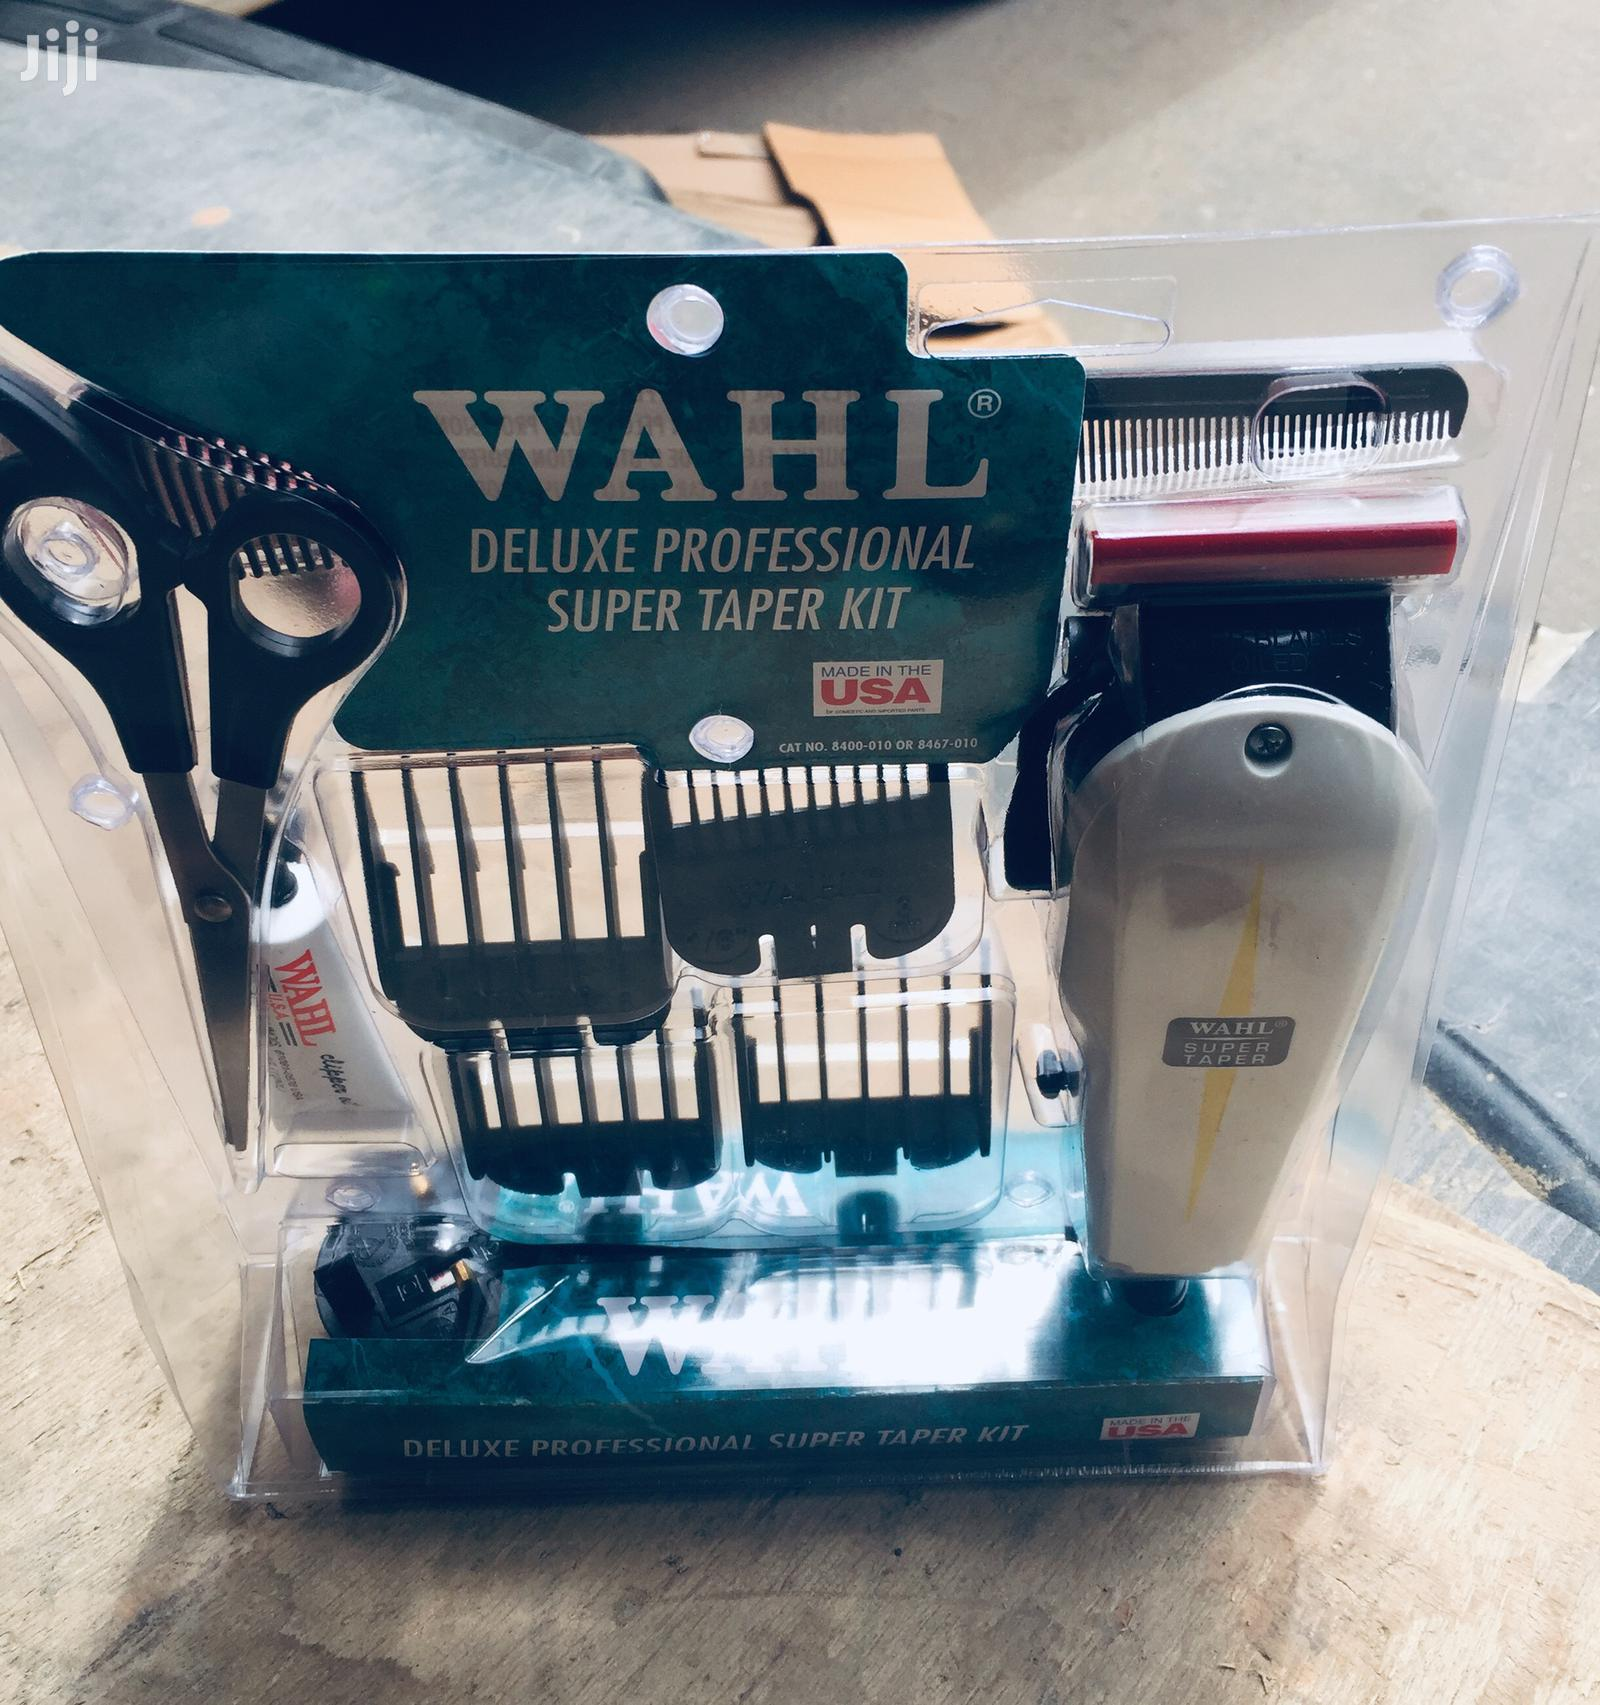 Wahl Deluxe Professional Super Taper KIT